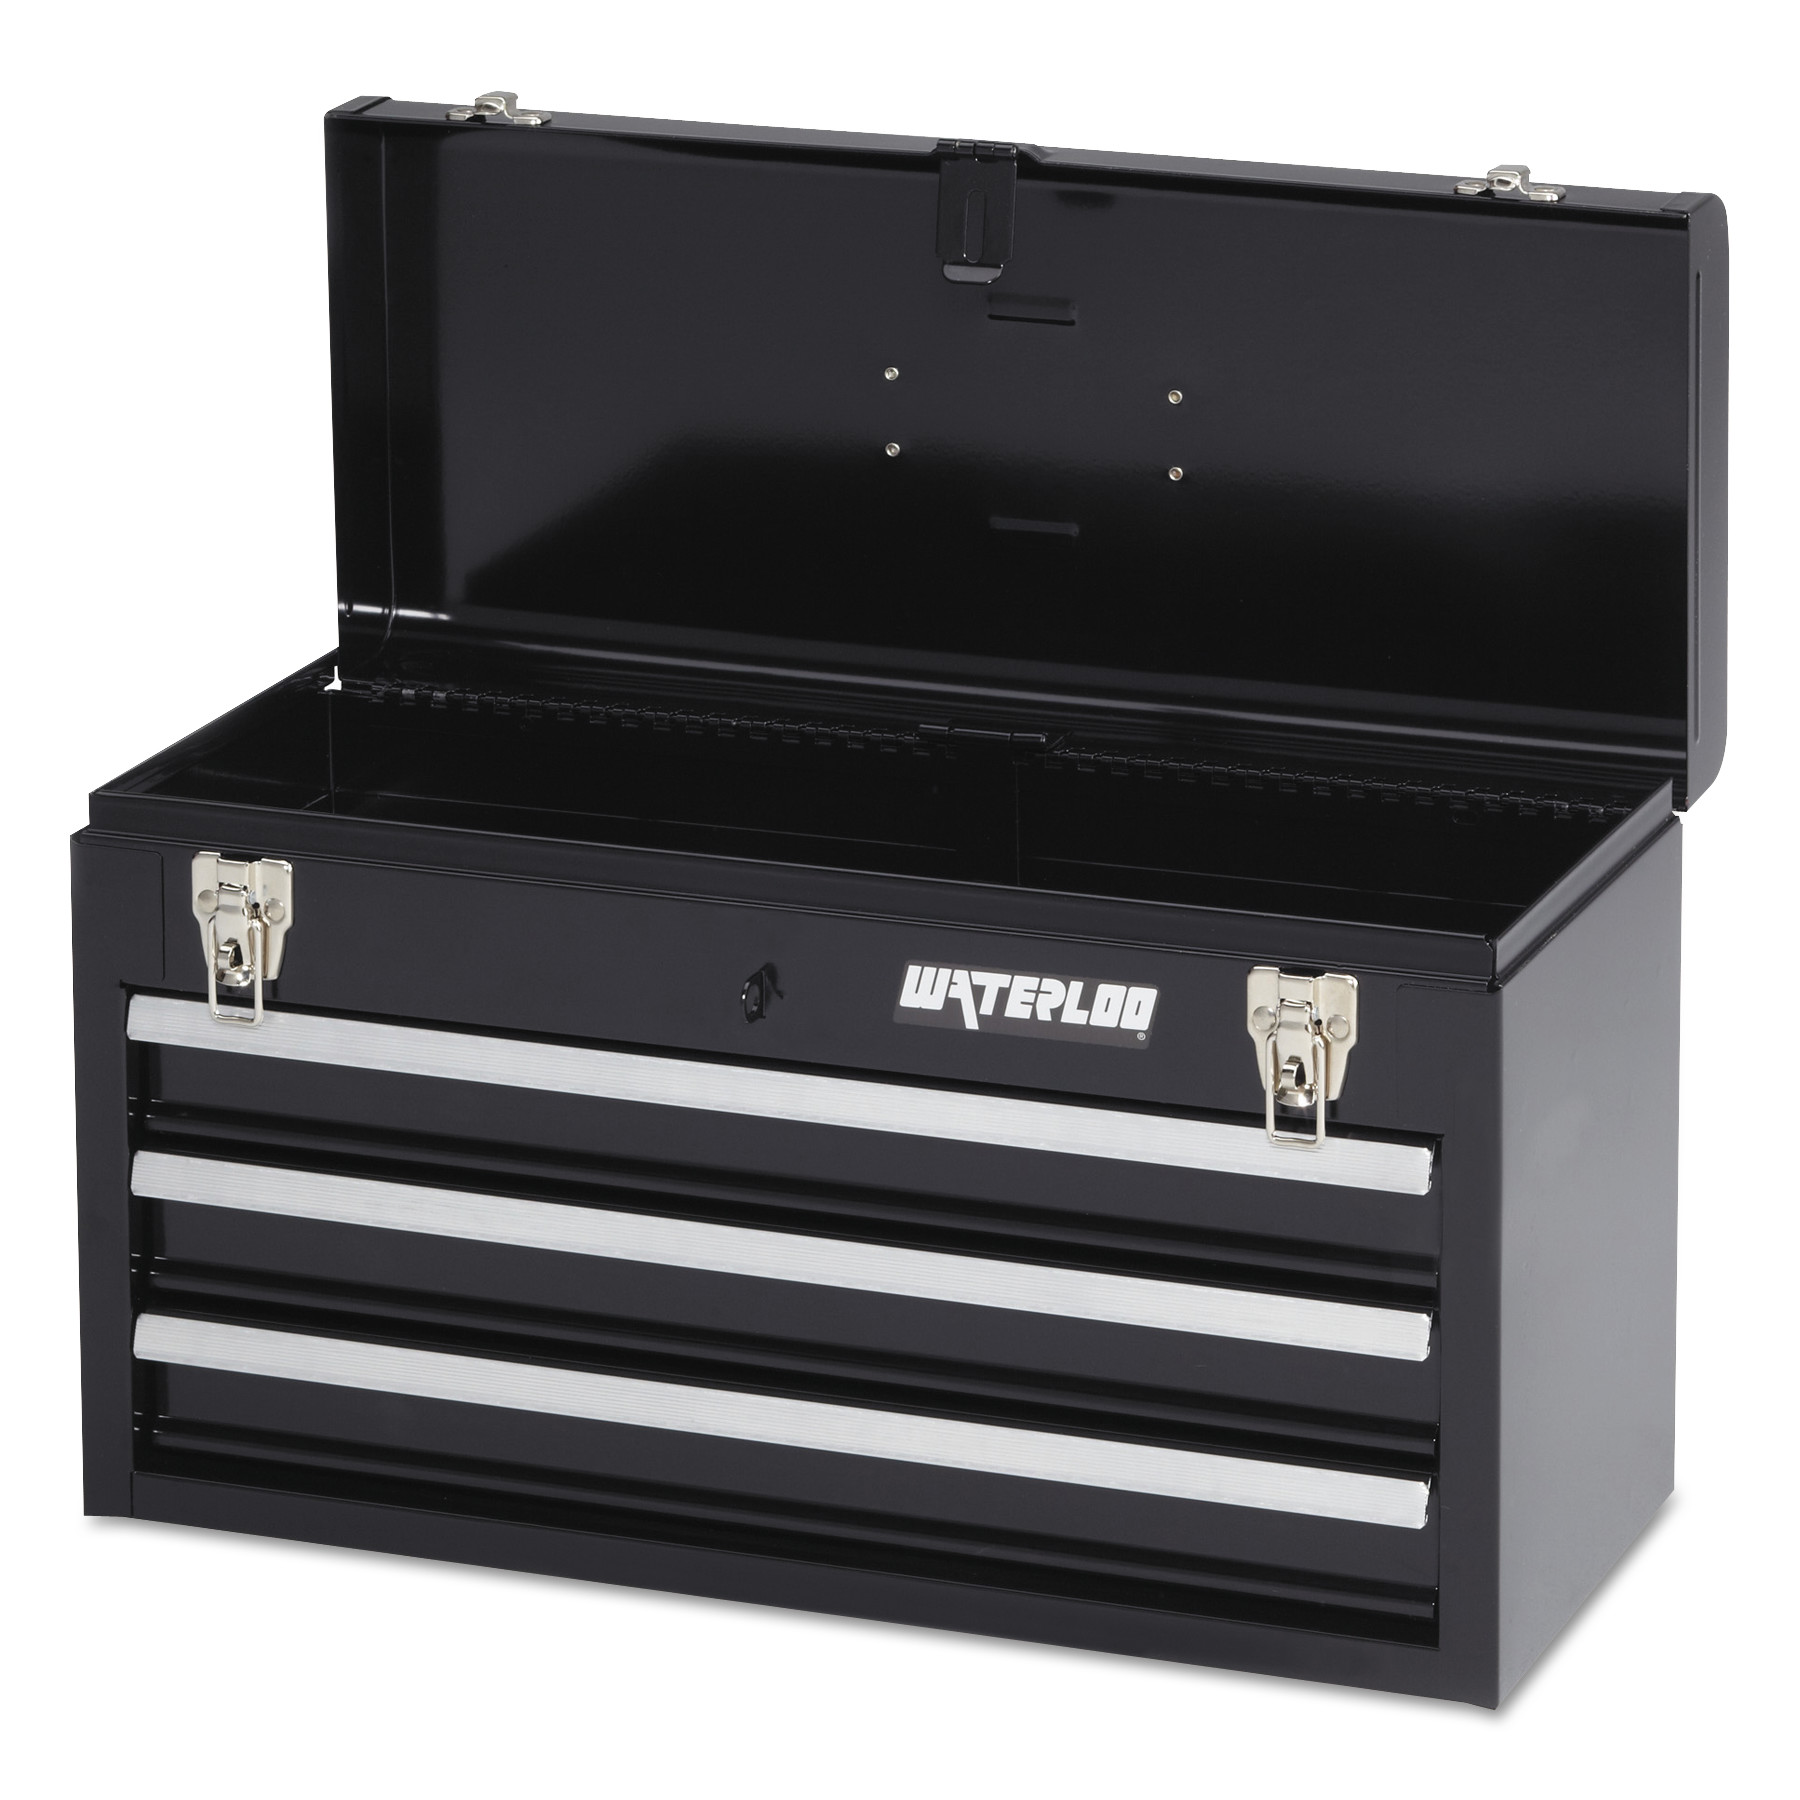 Waterloo Portable Chests, 20.535 in x 8.56 in x 9.56 in, 1,275 cu in, Black